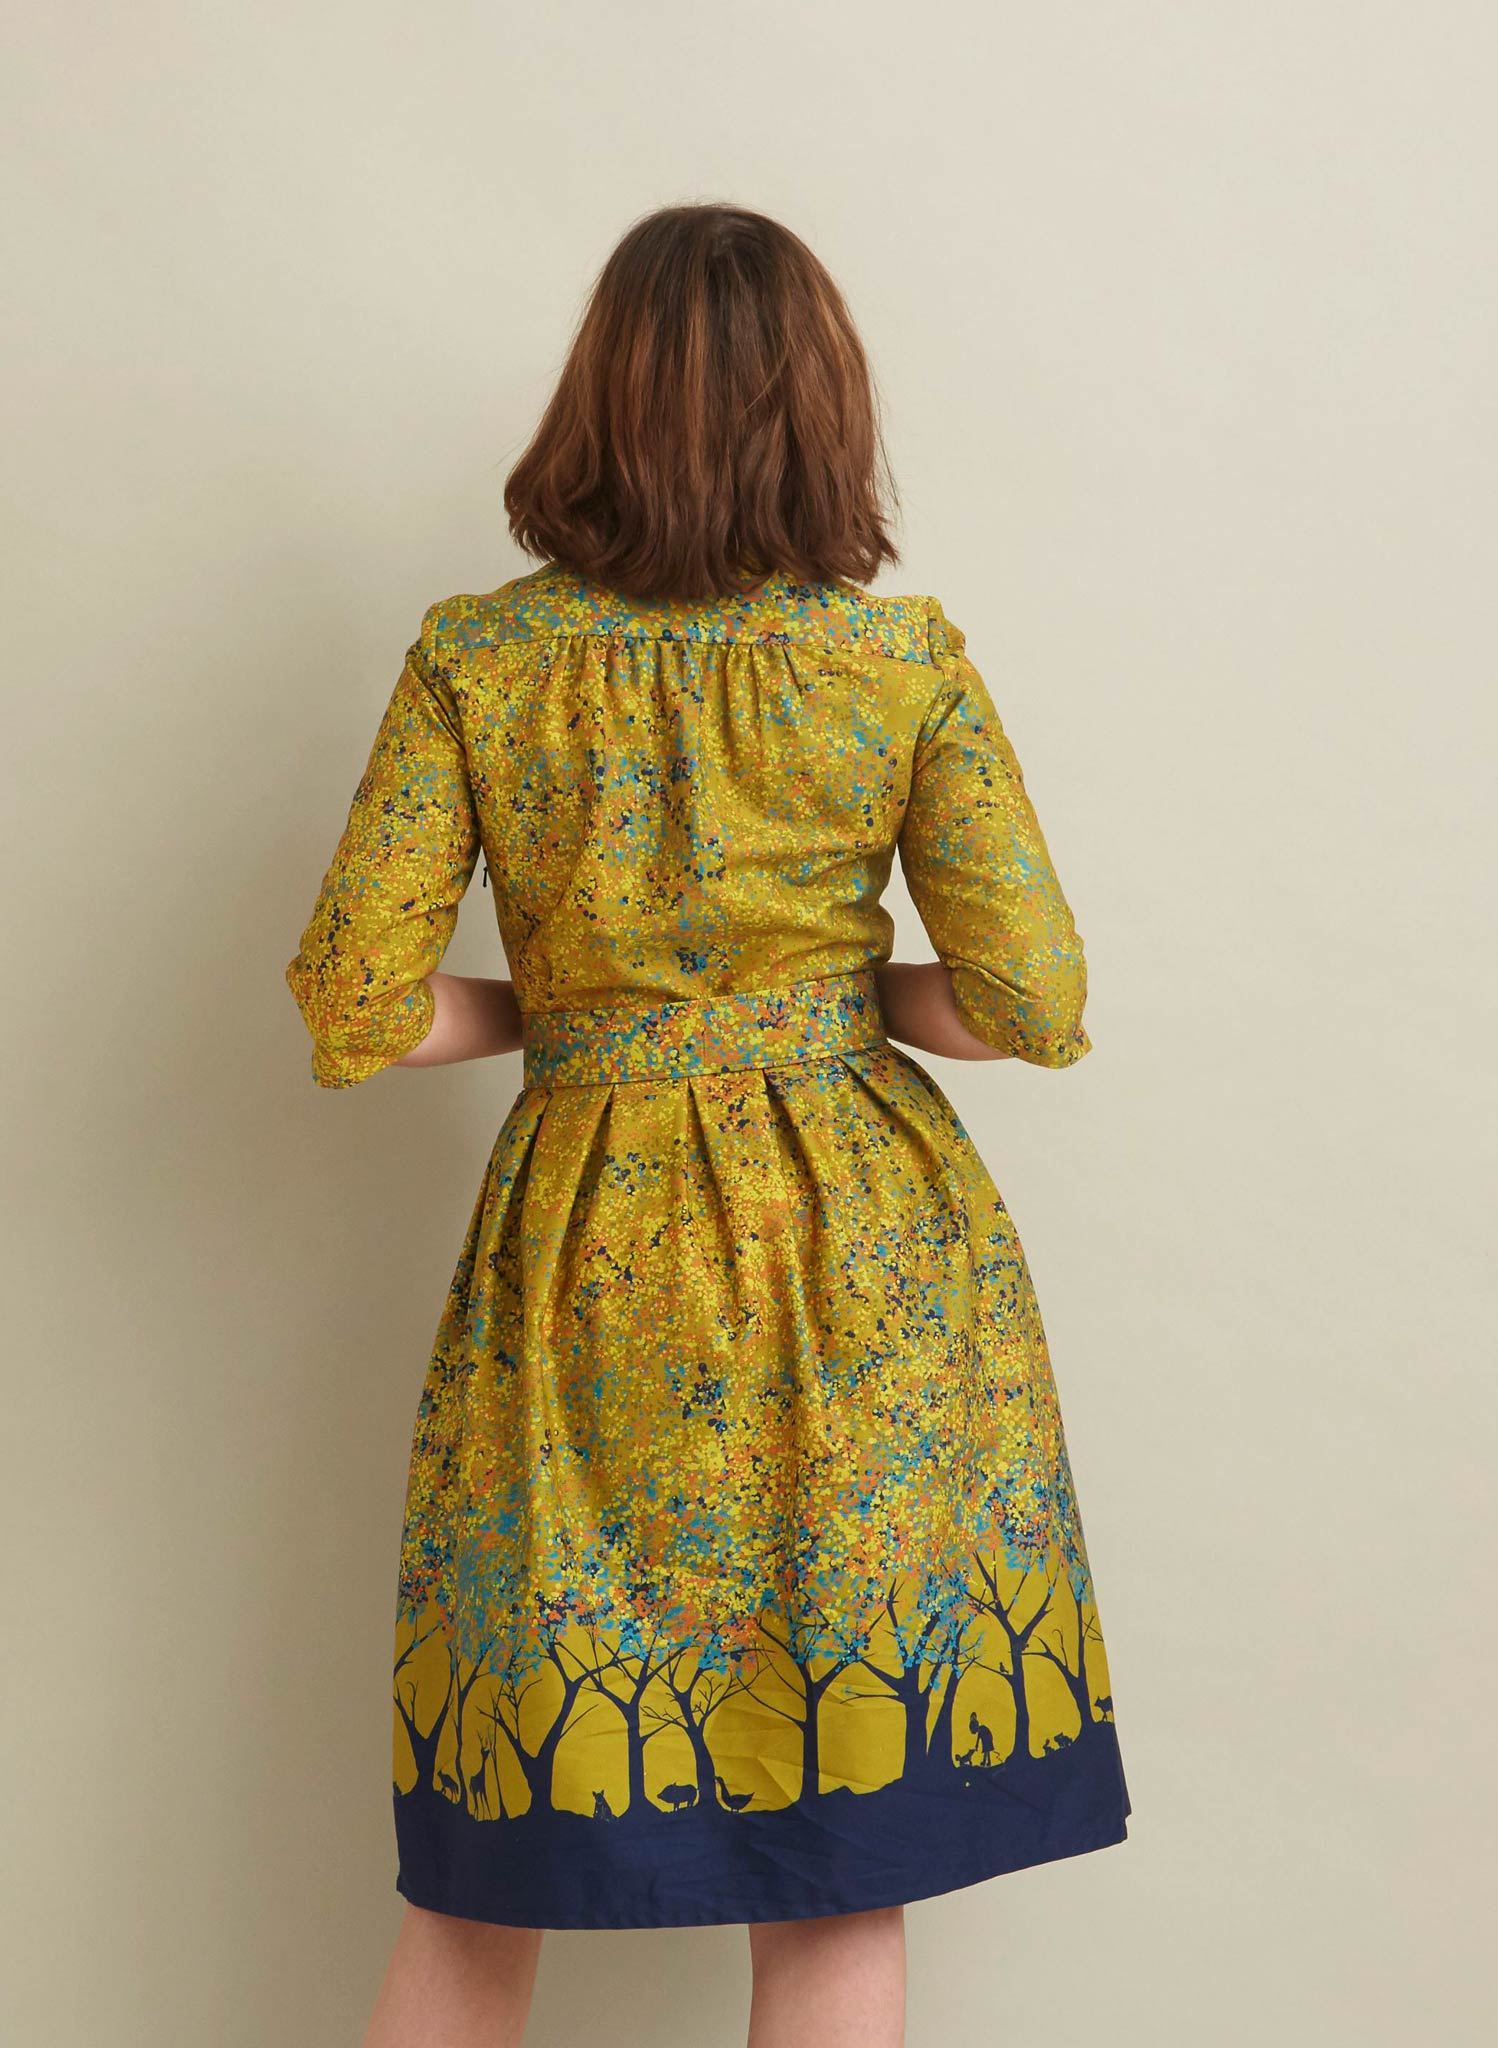 Cynthia - Mustard Forest Dress - 100% Organic Cotton